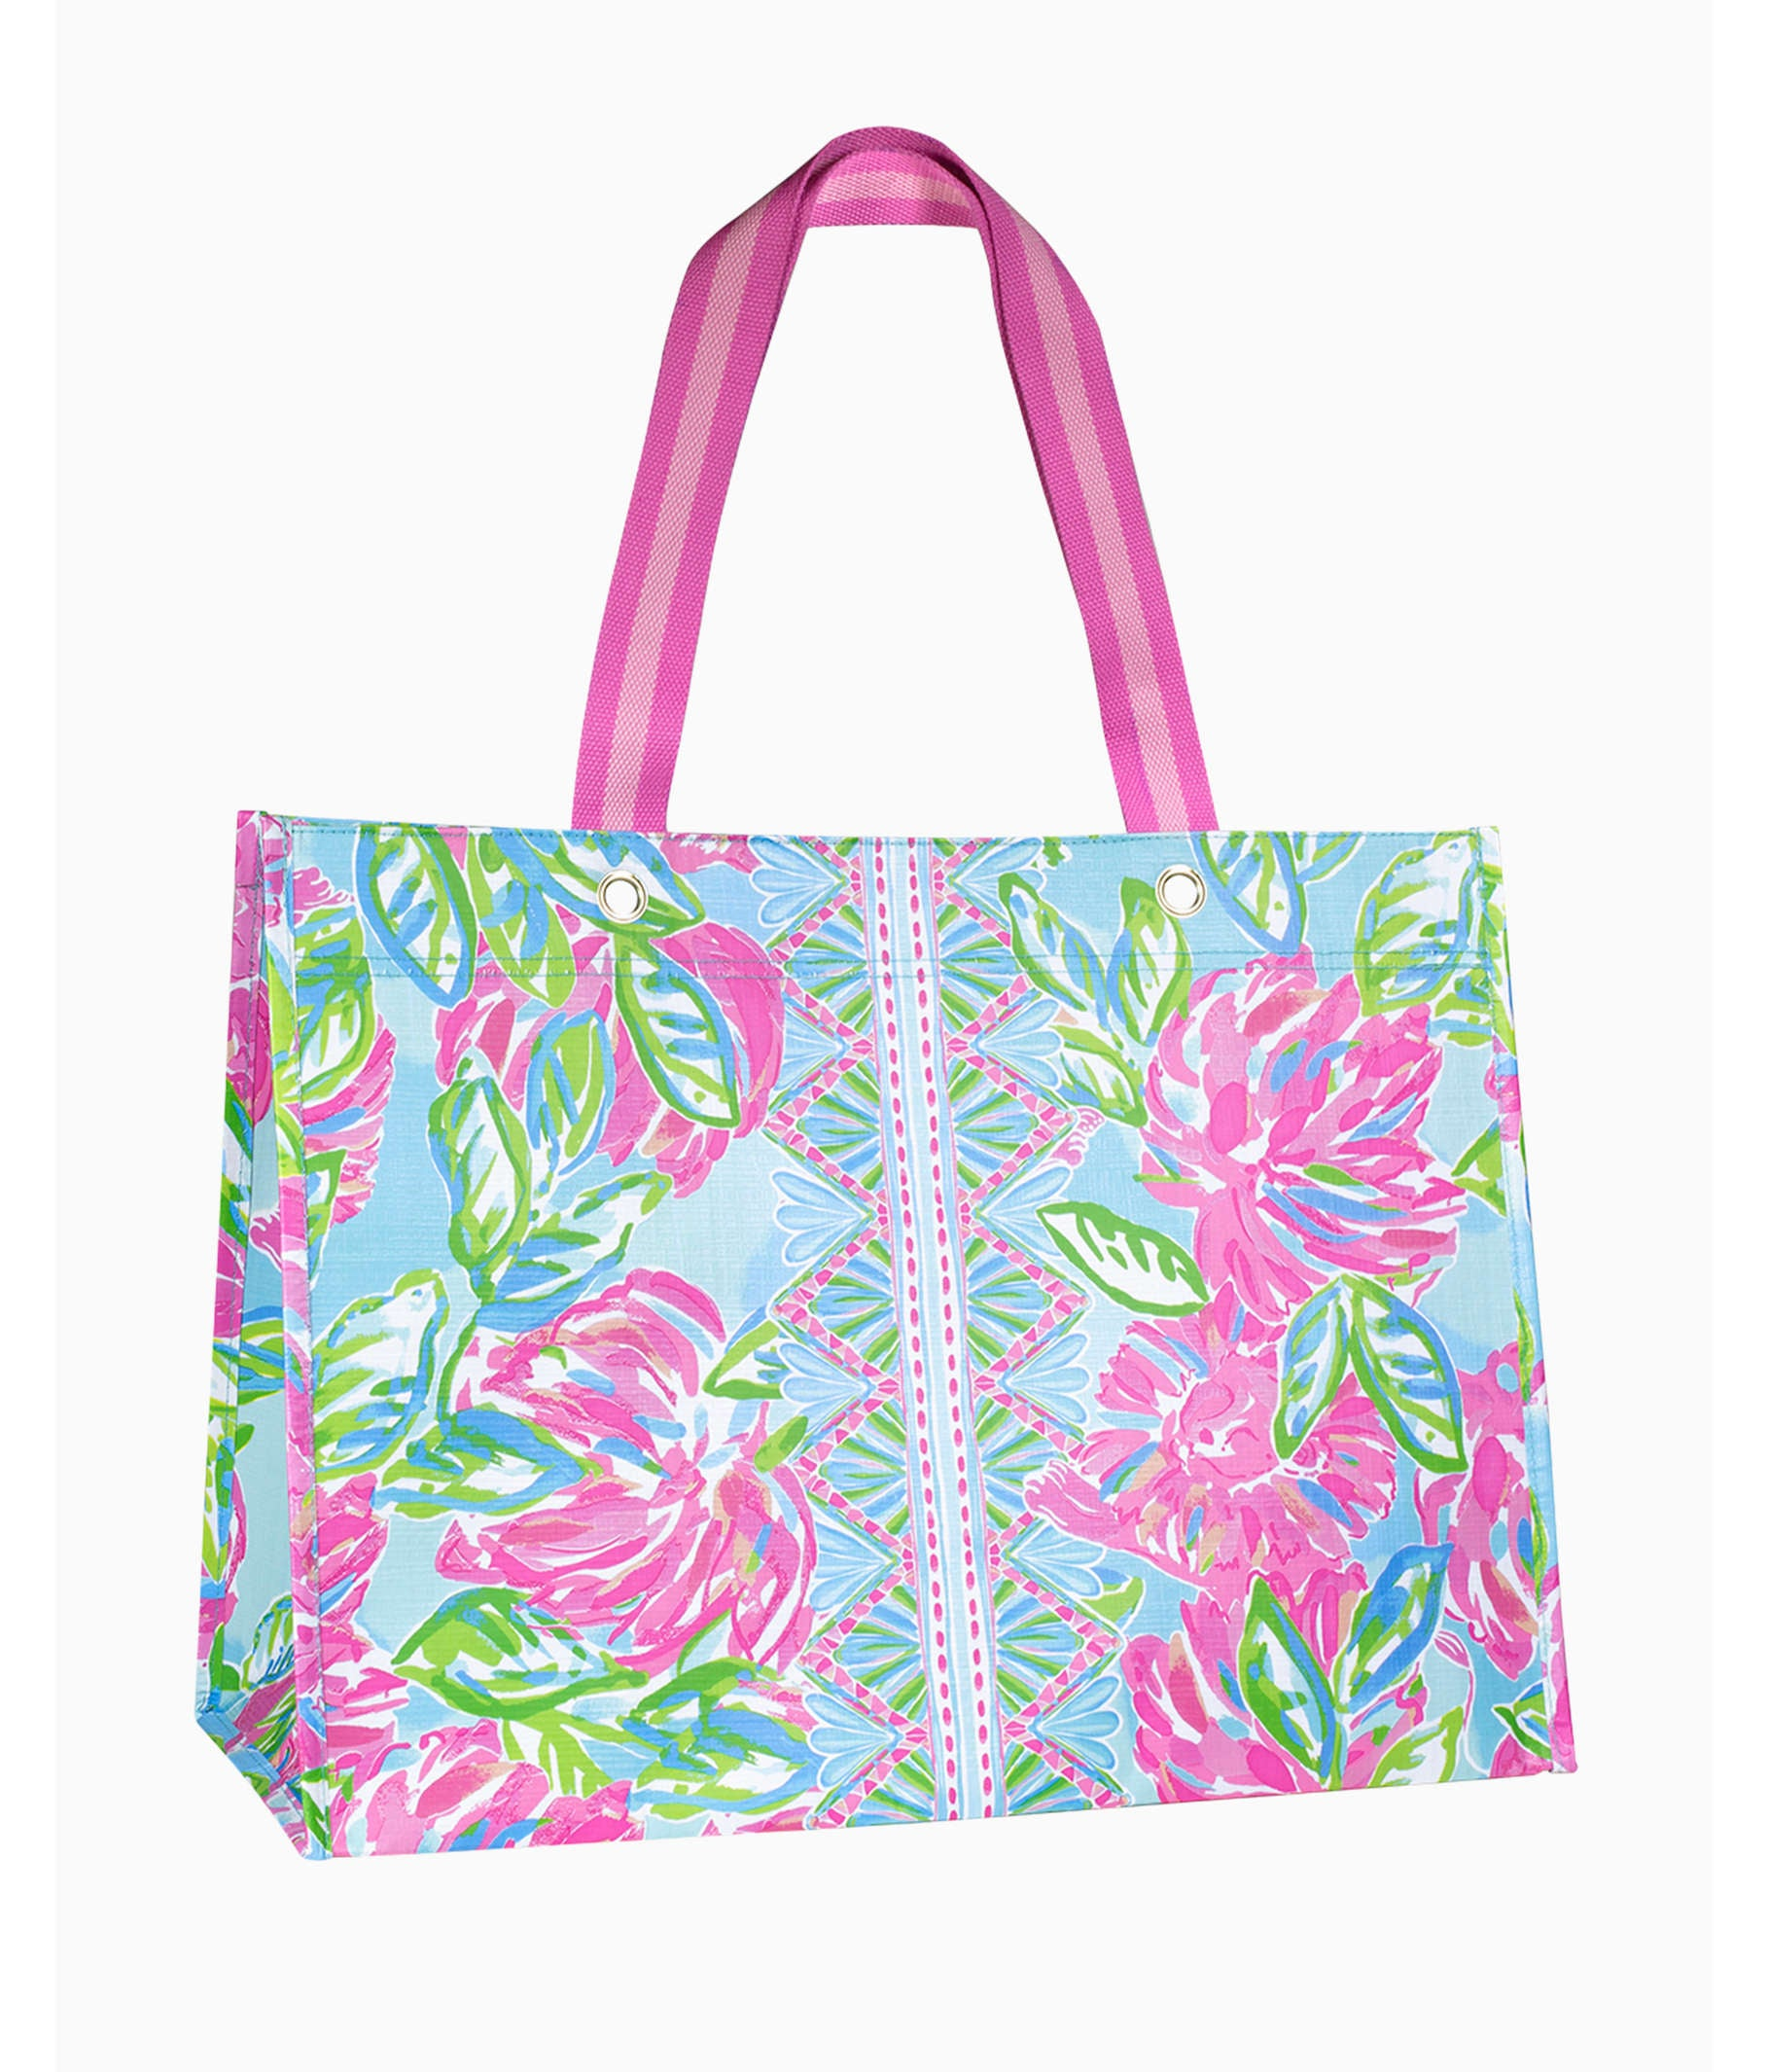 Lilly Pulitzer XL Market Tote, Totally Blossom